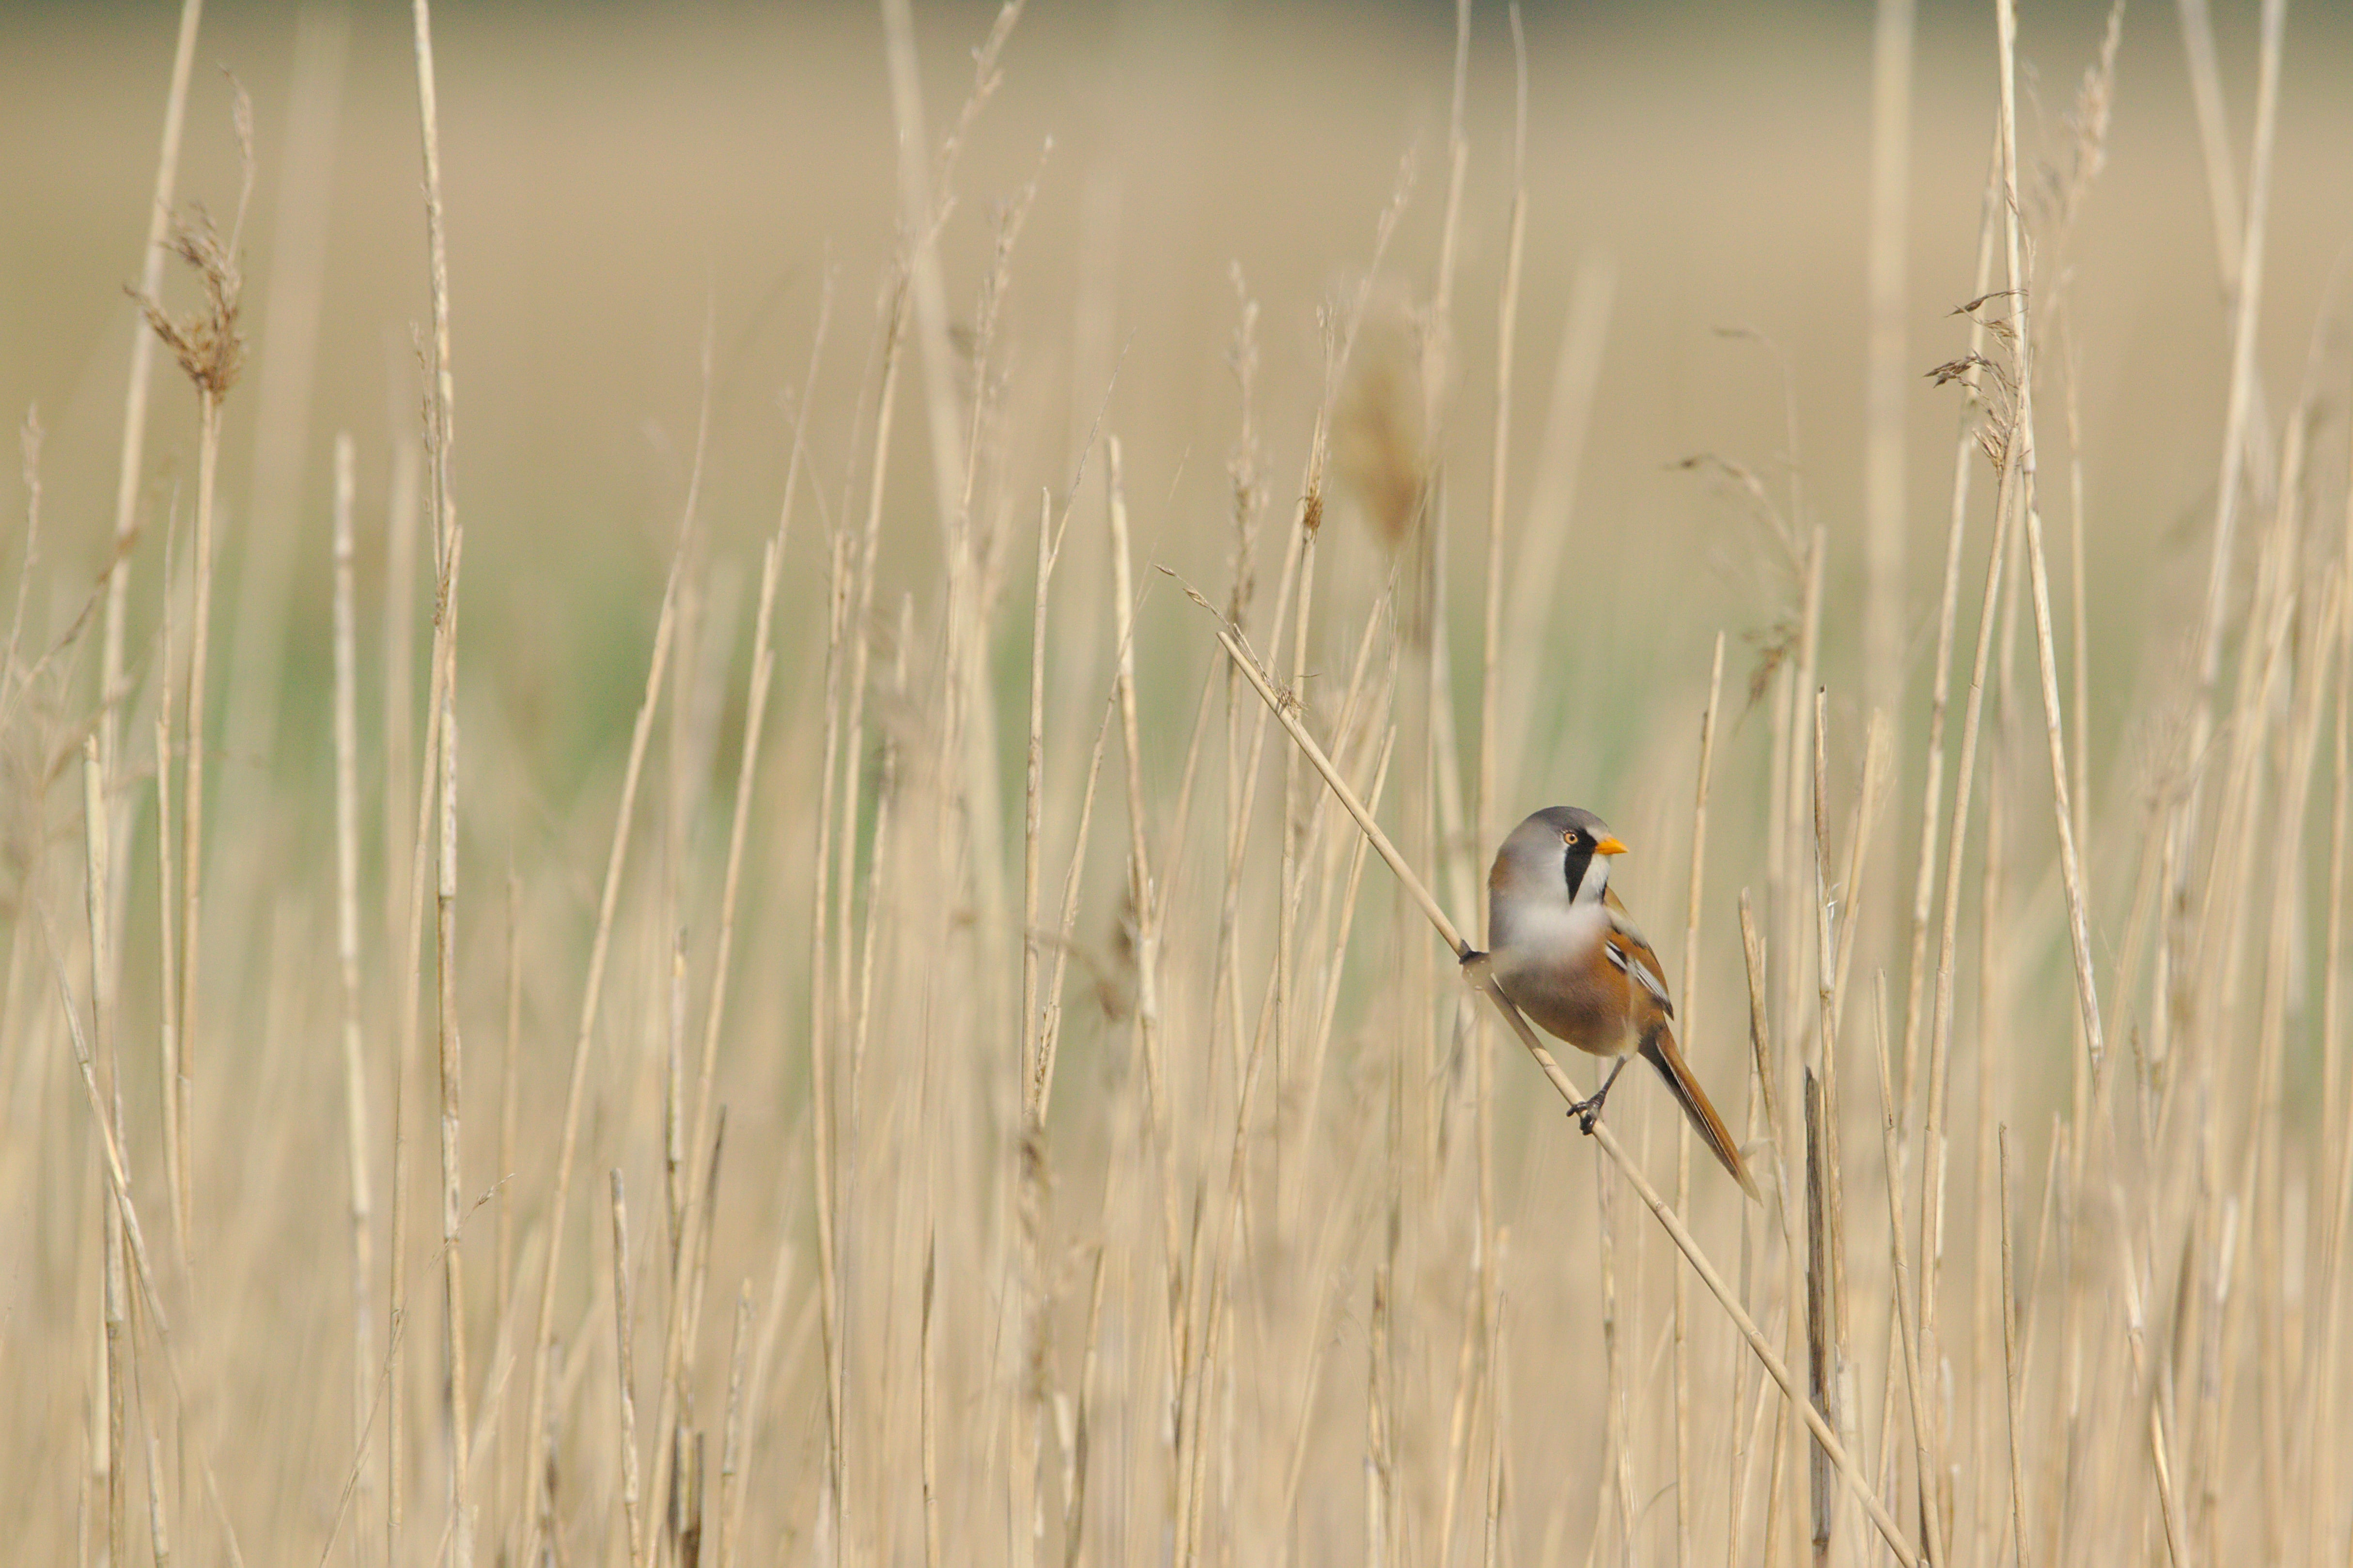 brown and gray bird on brown grass